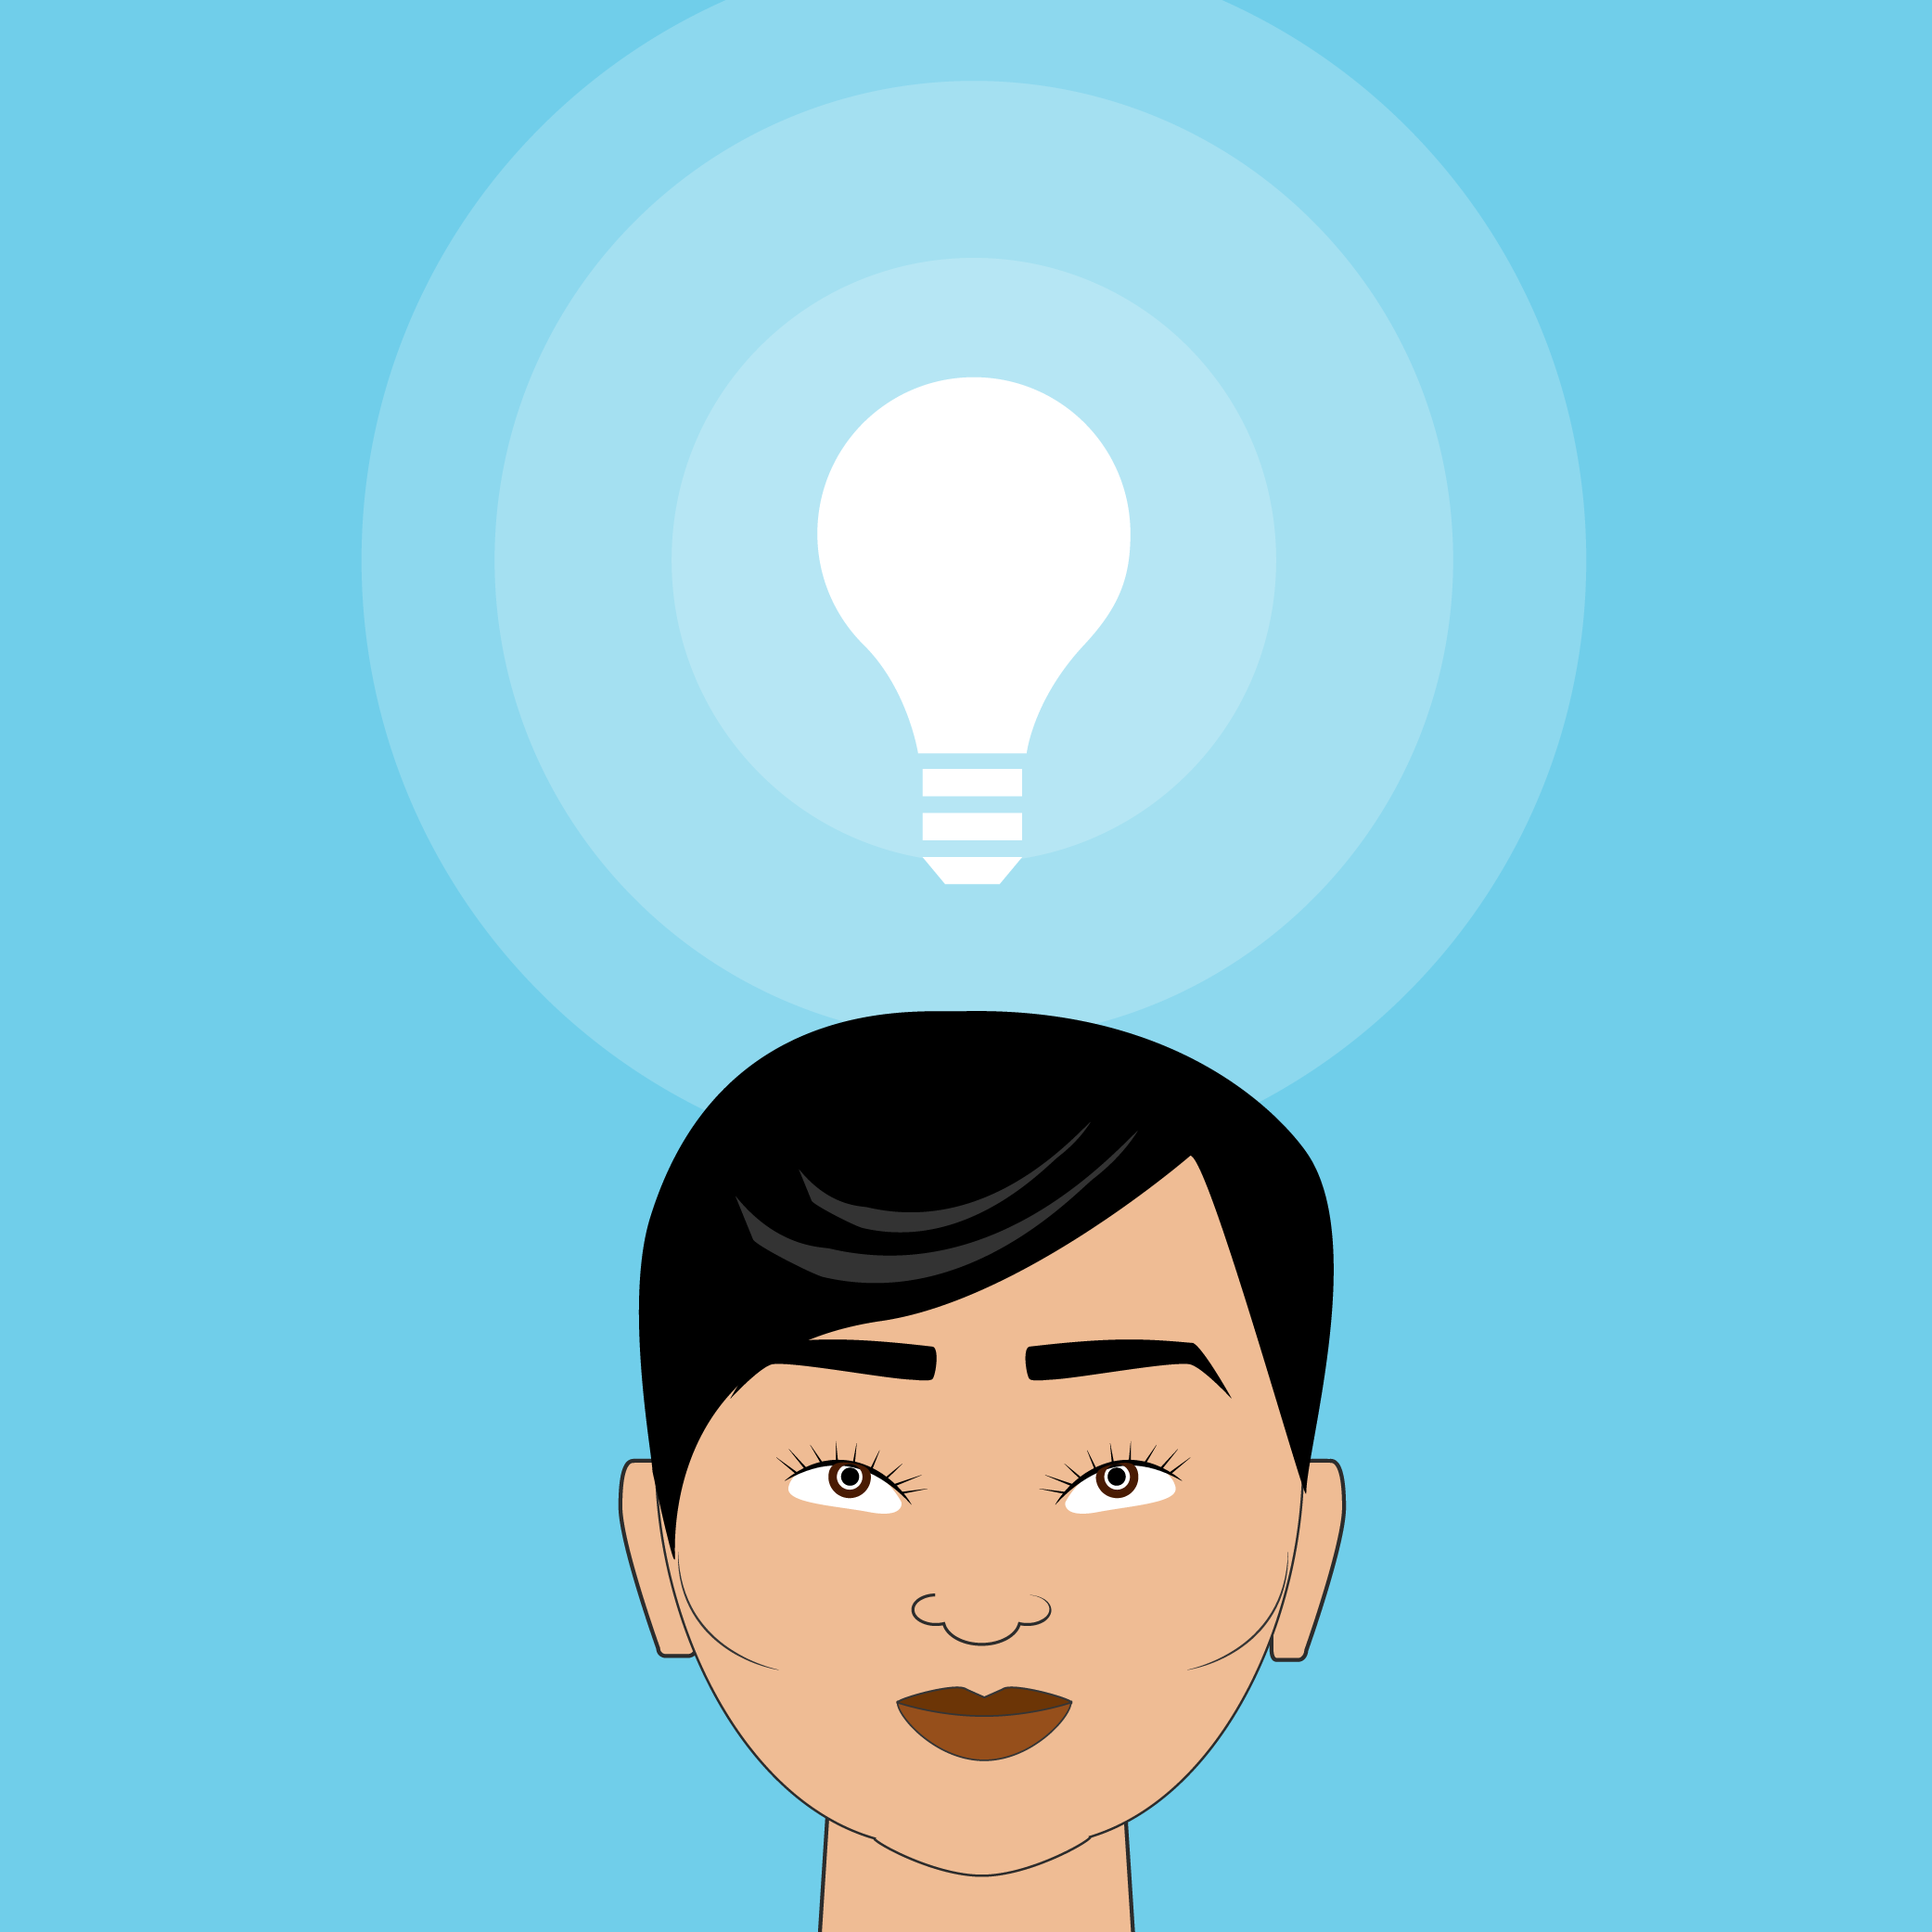 Illustration of a woman with an idea, shown as a lightbulb above her head.